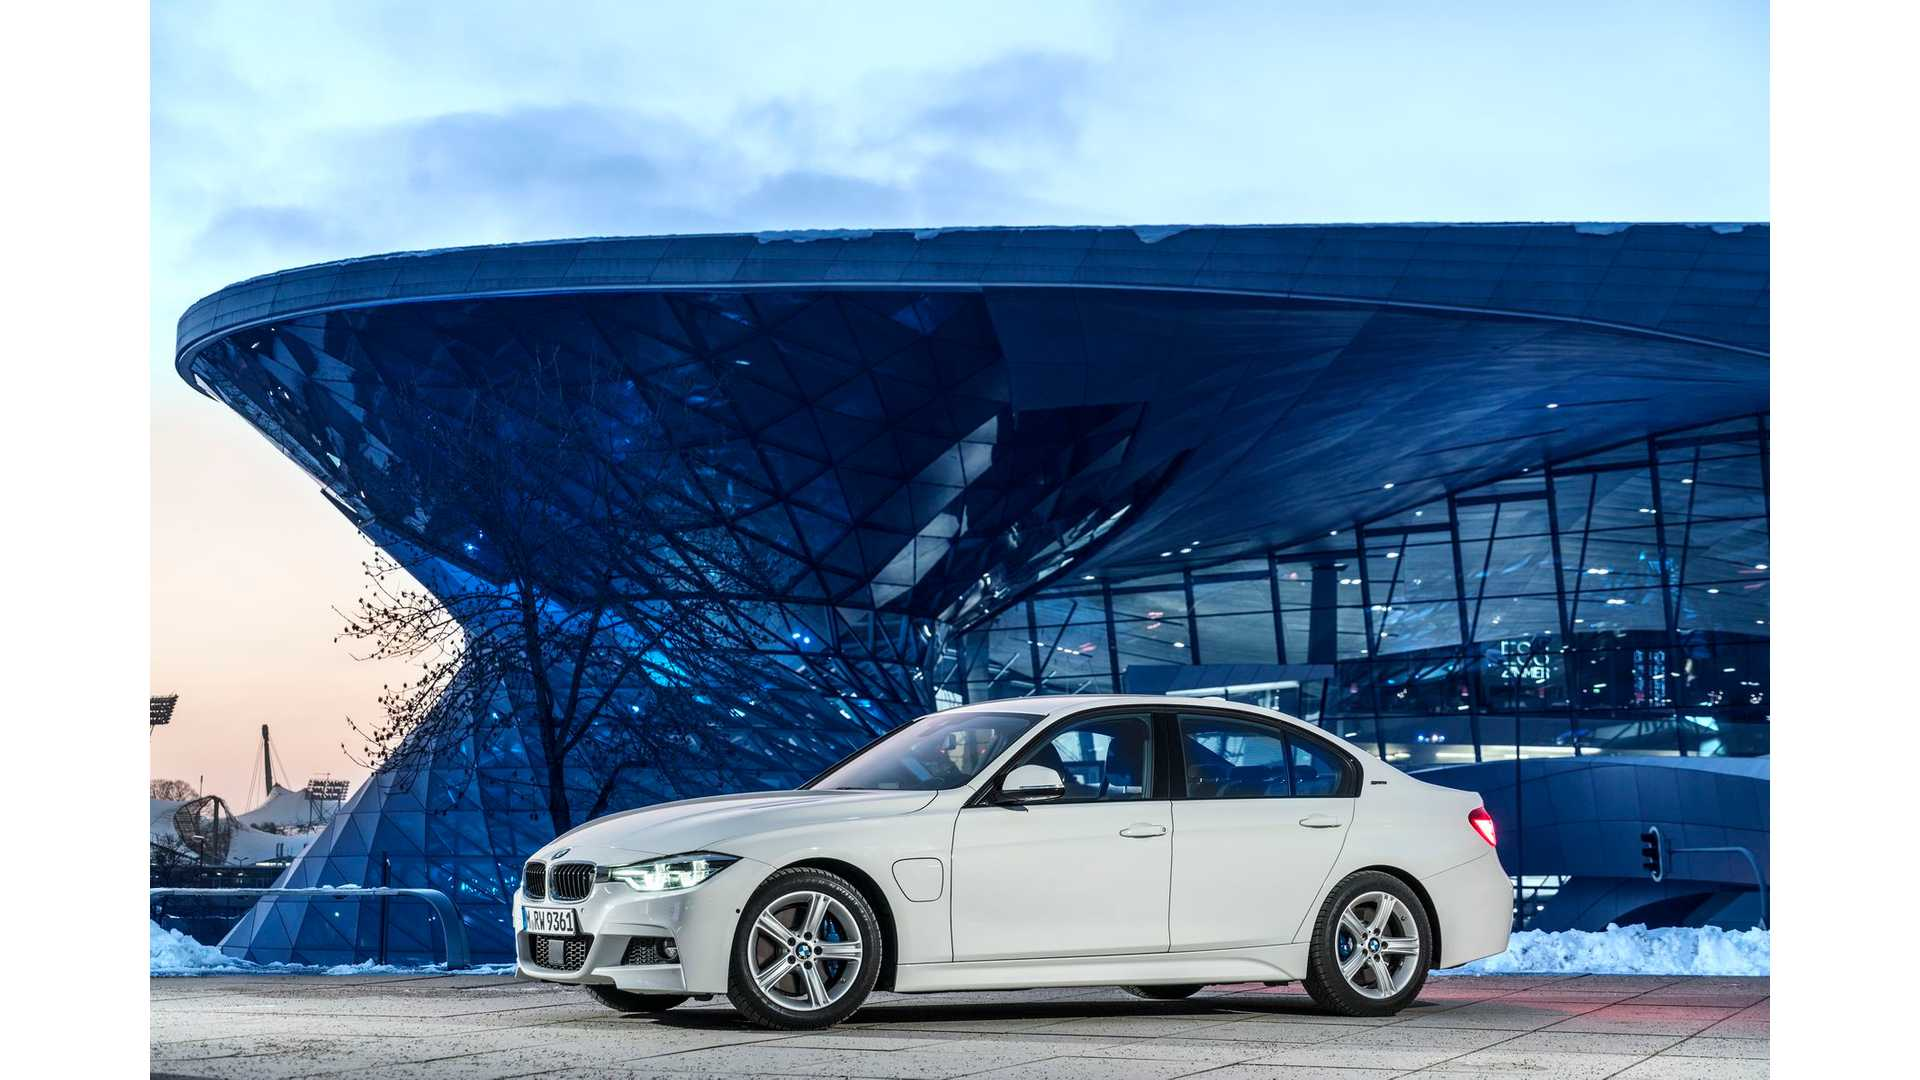 Bmw Car Mileage Luxury Car And Motorcycle Brands